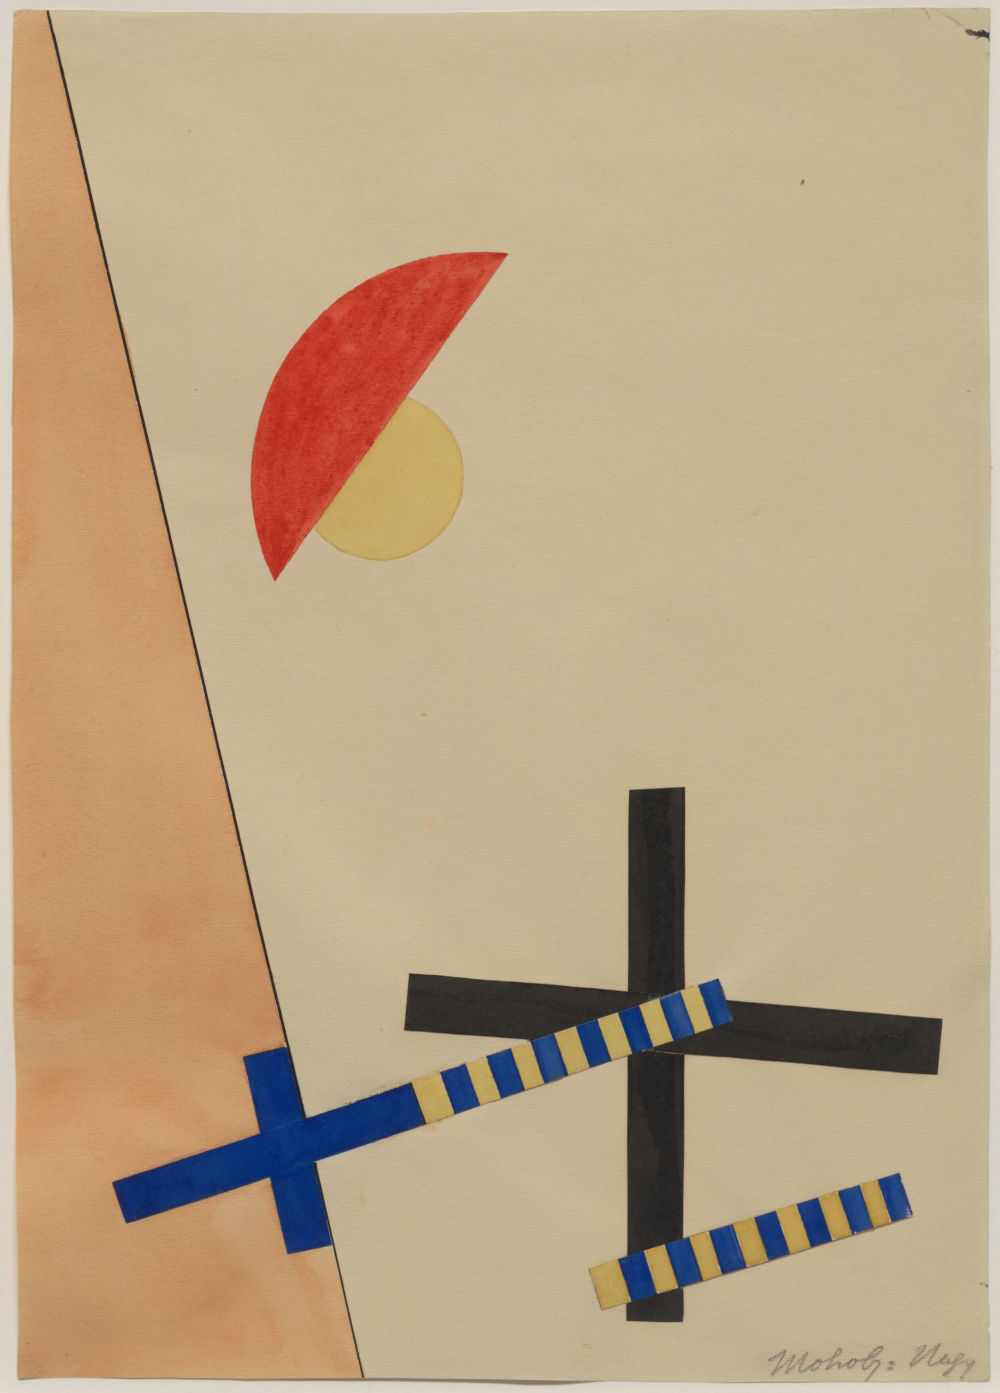 László Moholy-Nagy, Collage mit 2 Kreuzen (Collage with 2 Crosses), 1922. Mixed media 31 x 22.5 cm / 12 1/4 x 8 7/8 in © the Estate of László Moholy-Nagy / Artists Rights Society (ARS), New York / VG Bild-Kunst, Bonn. Courtesy of the Estate of László Moholy-Nagy